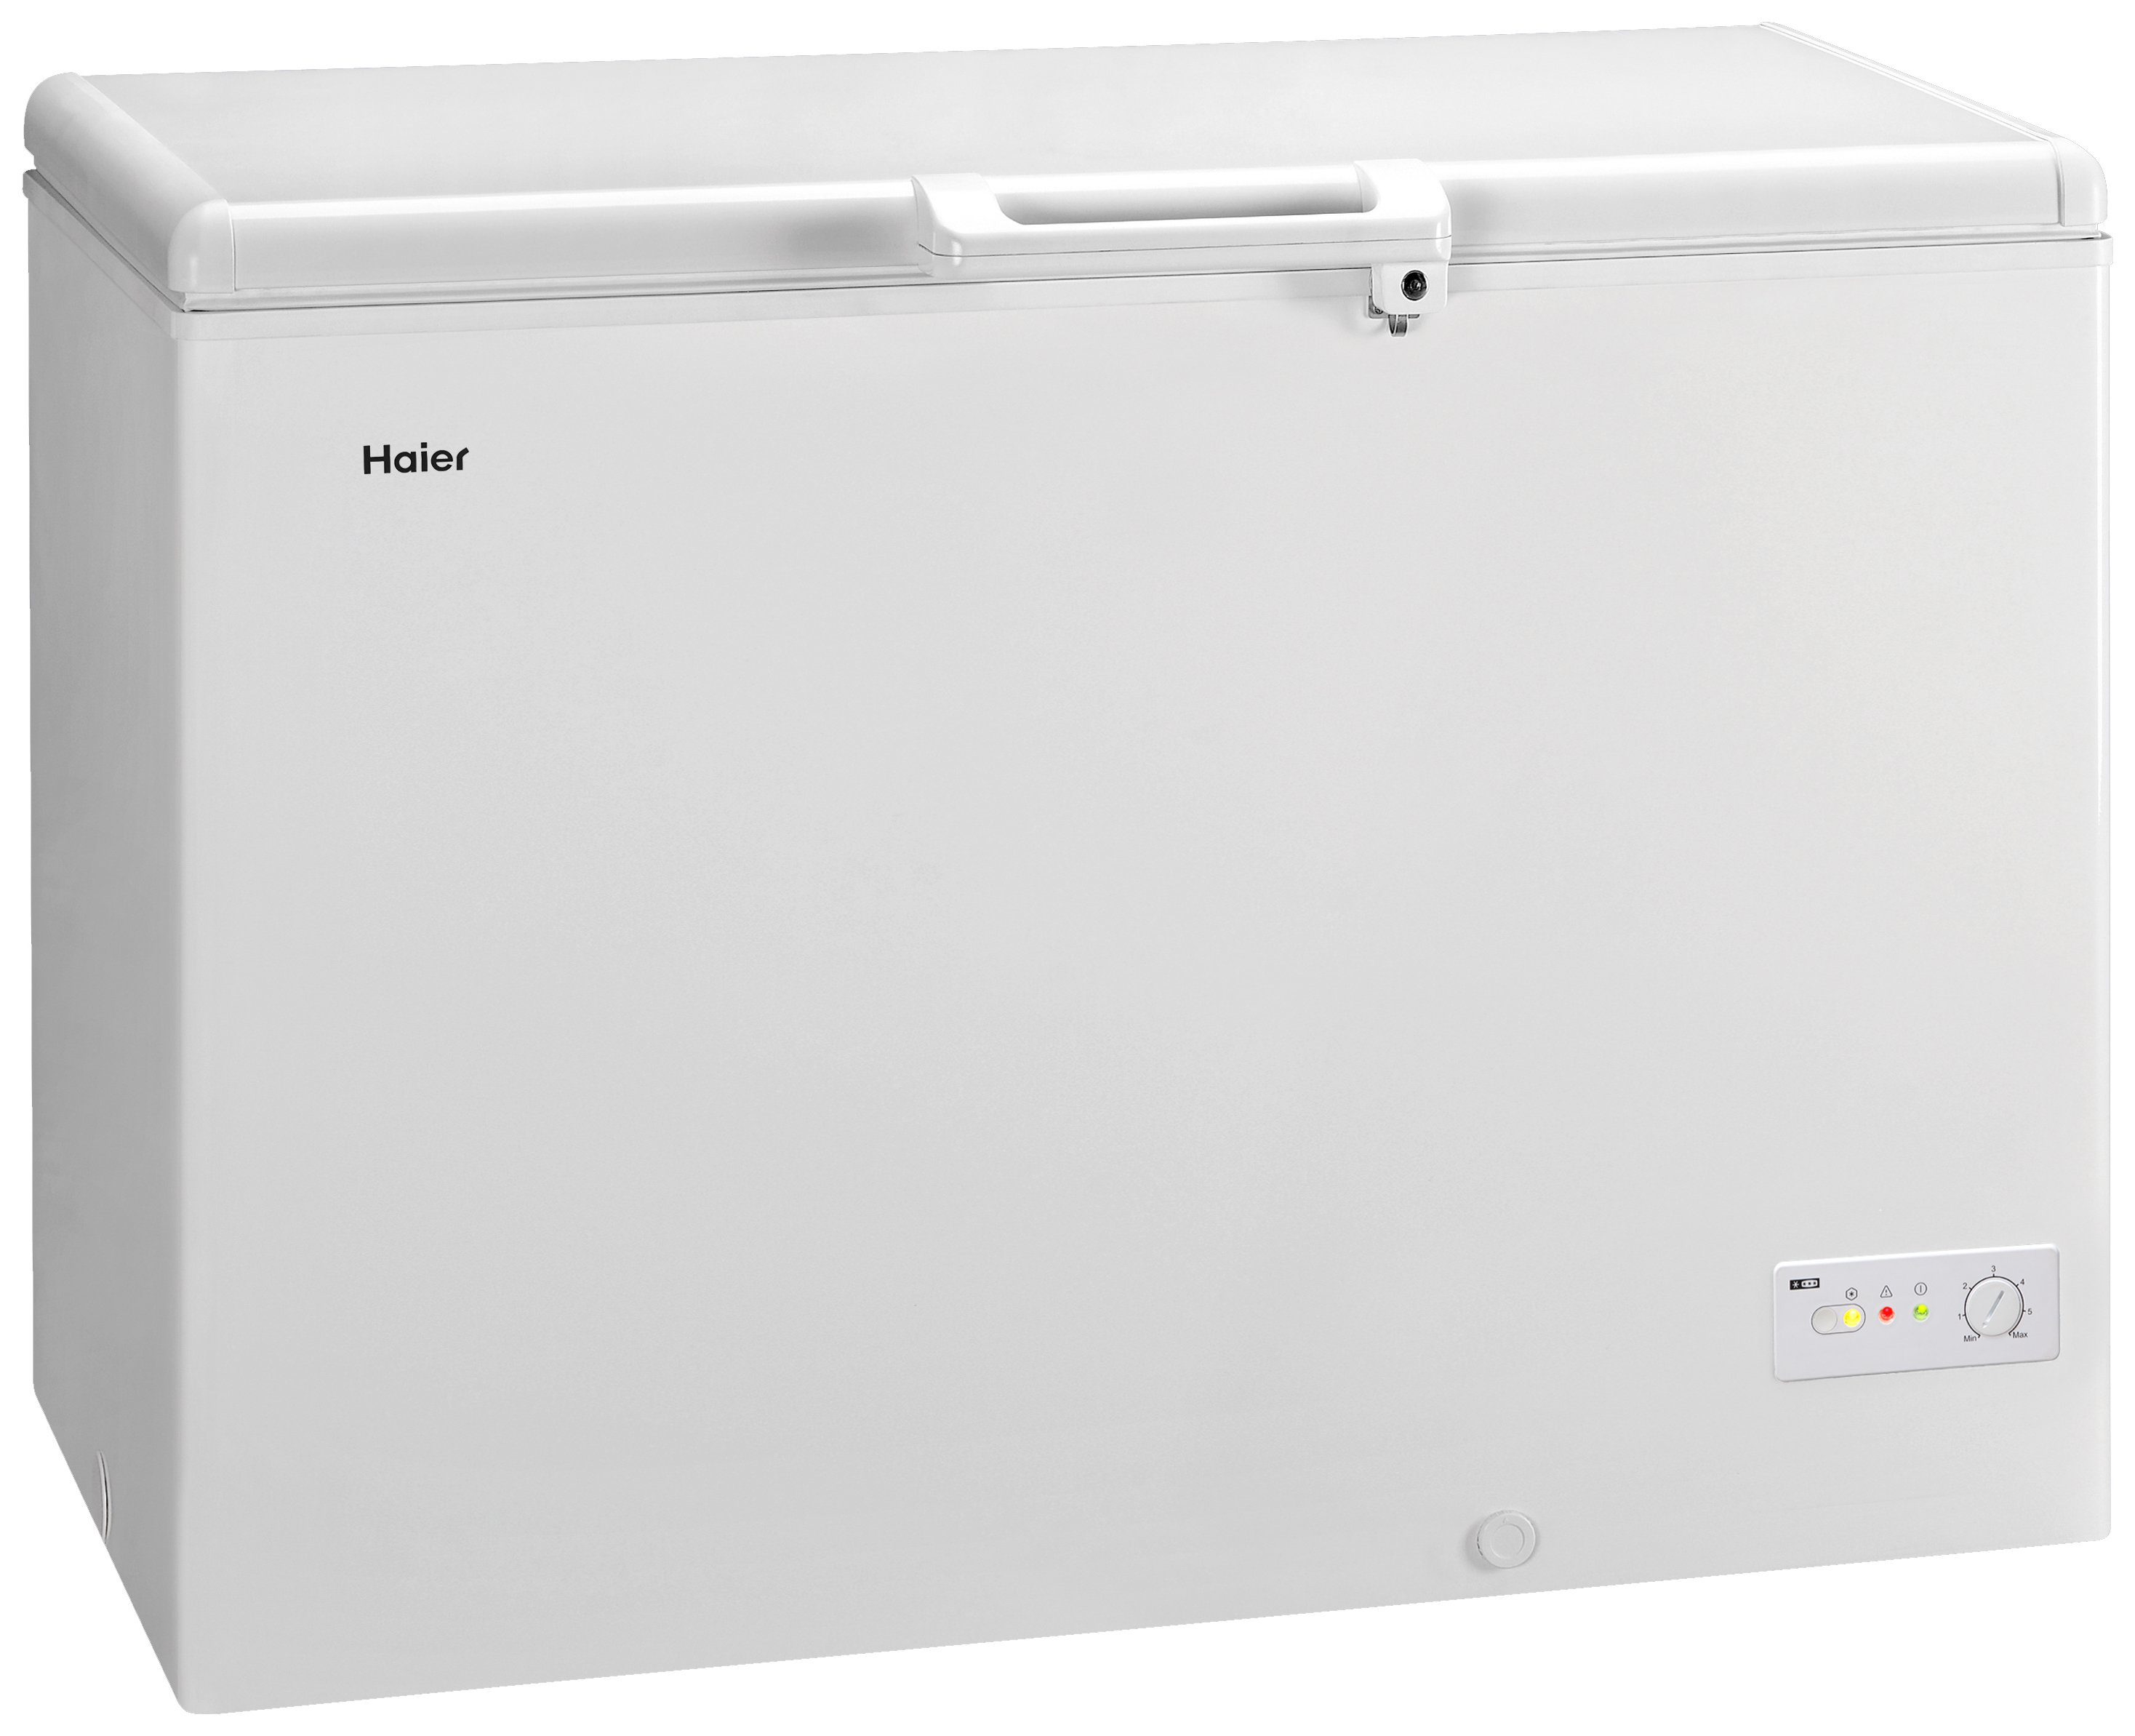 Image of Haier BD-319RAA Chest Freezer - White